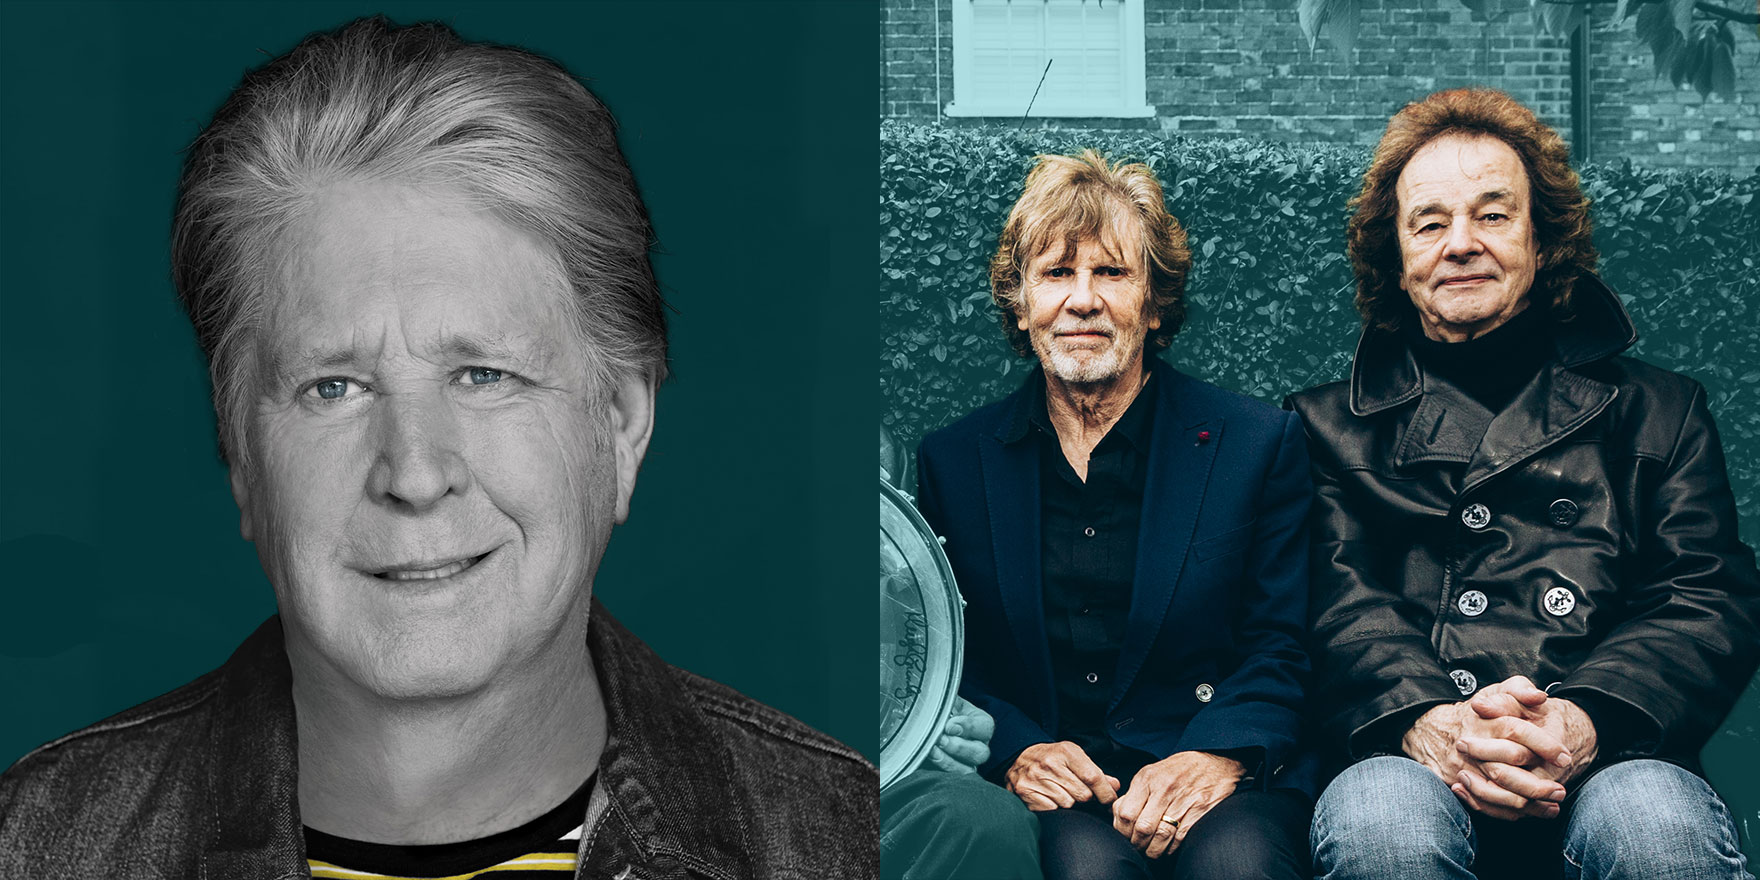 Brian Wilson Talks with The Zombies for the Talkhouse Podcast